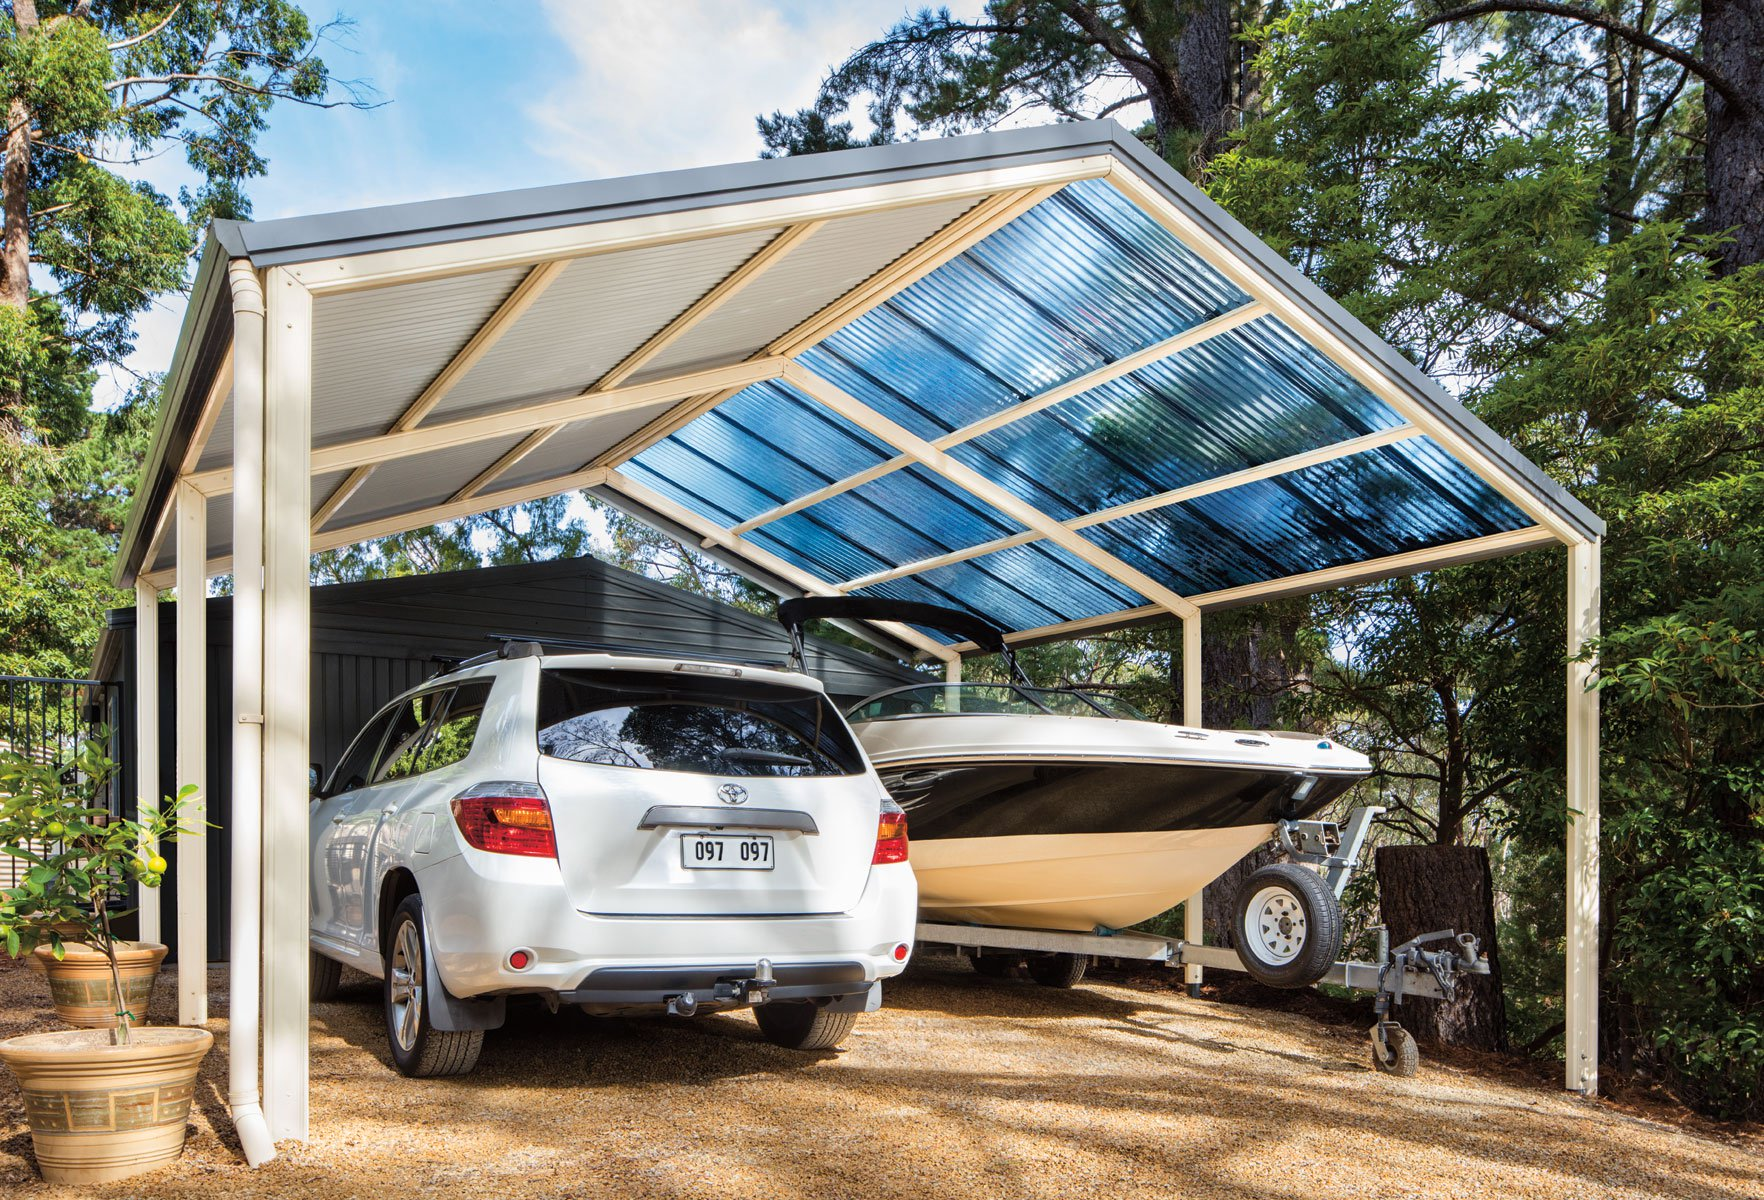 , Carports Melbourne Residents Love: Why to Select a Carport Over a Garage